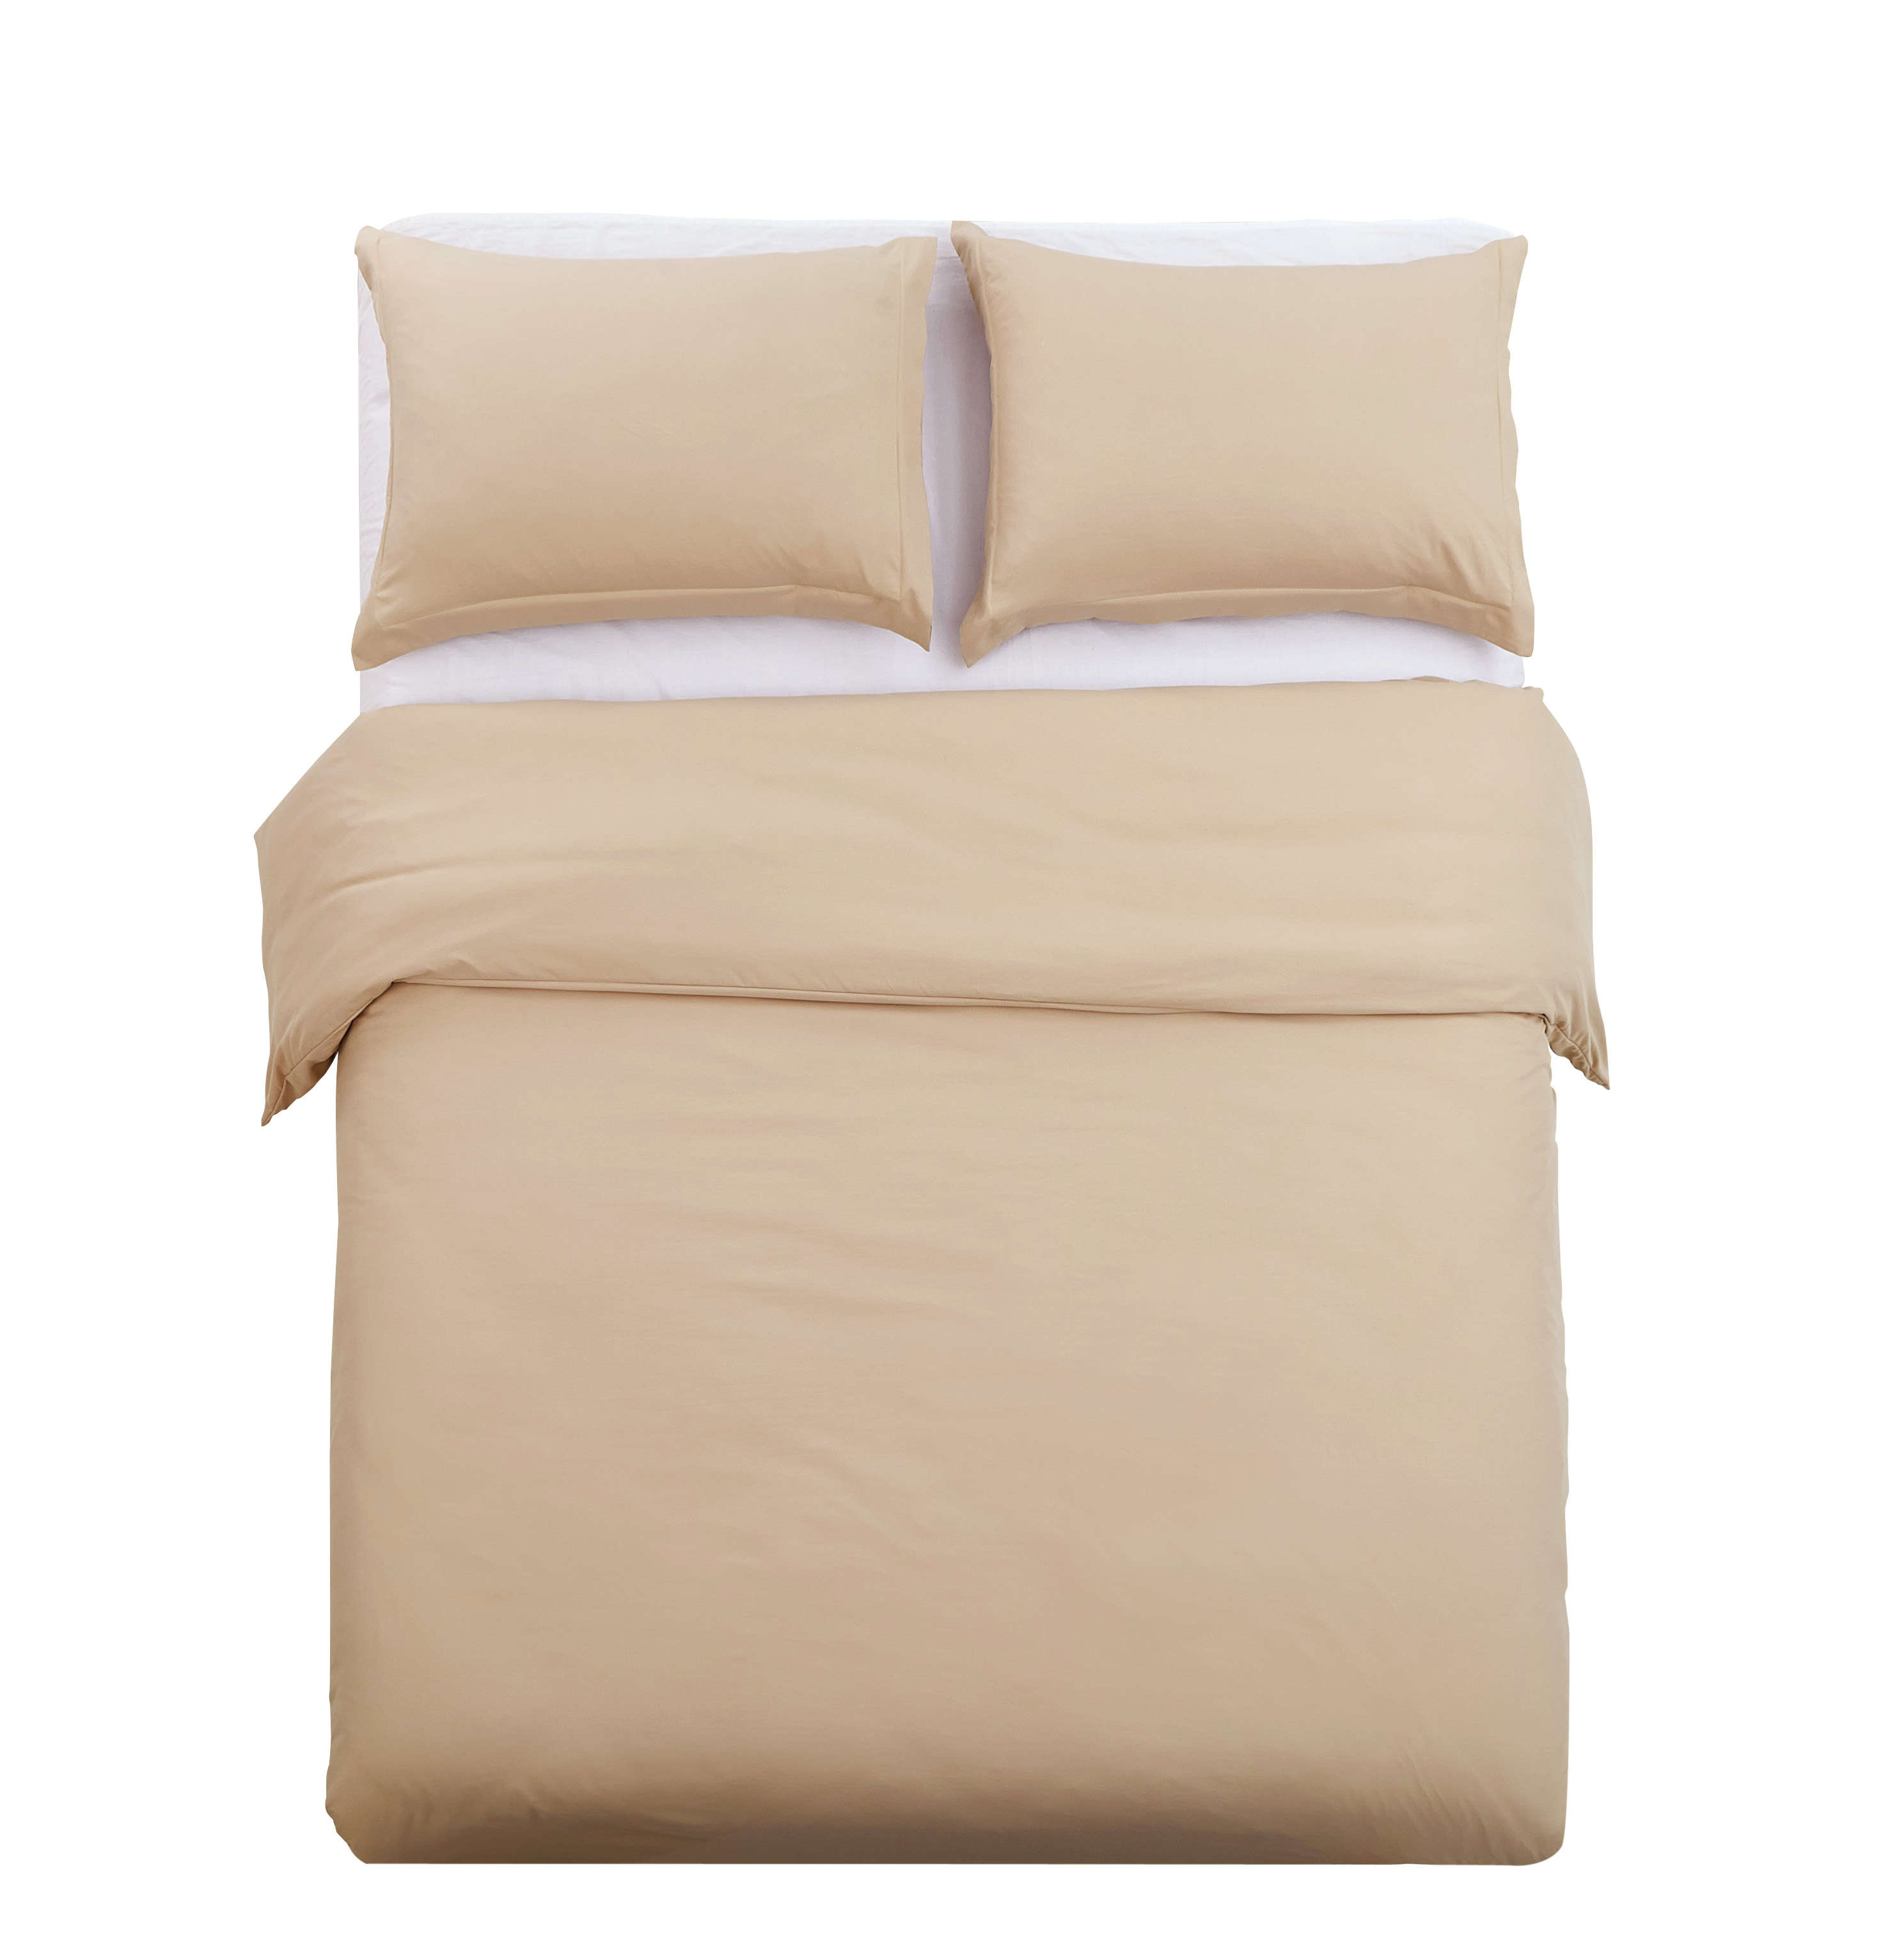 Duvet Cover Sets 3 PC Brushed Microfiber Solid Color, Khaki, Full/Queen